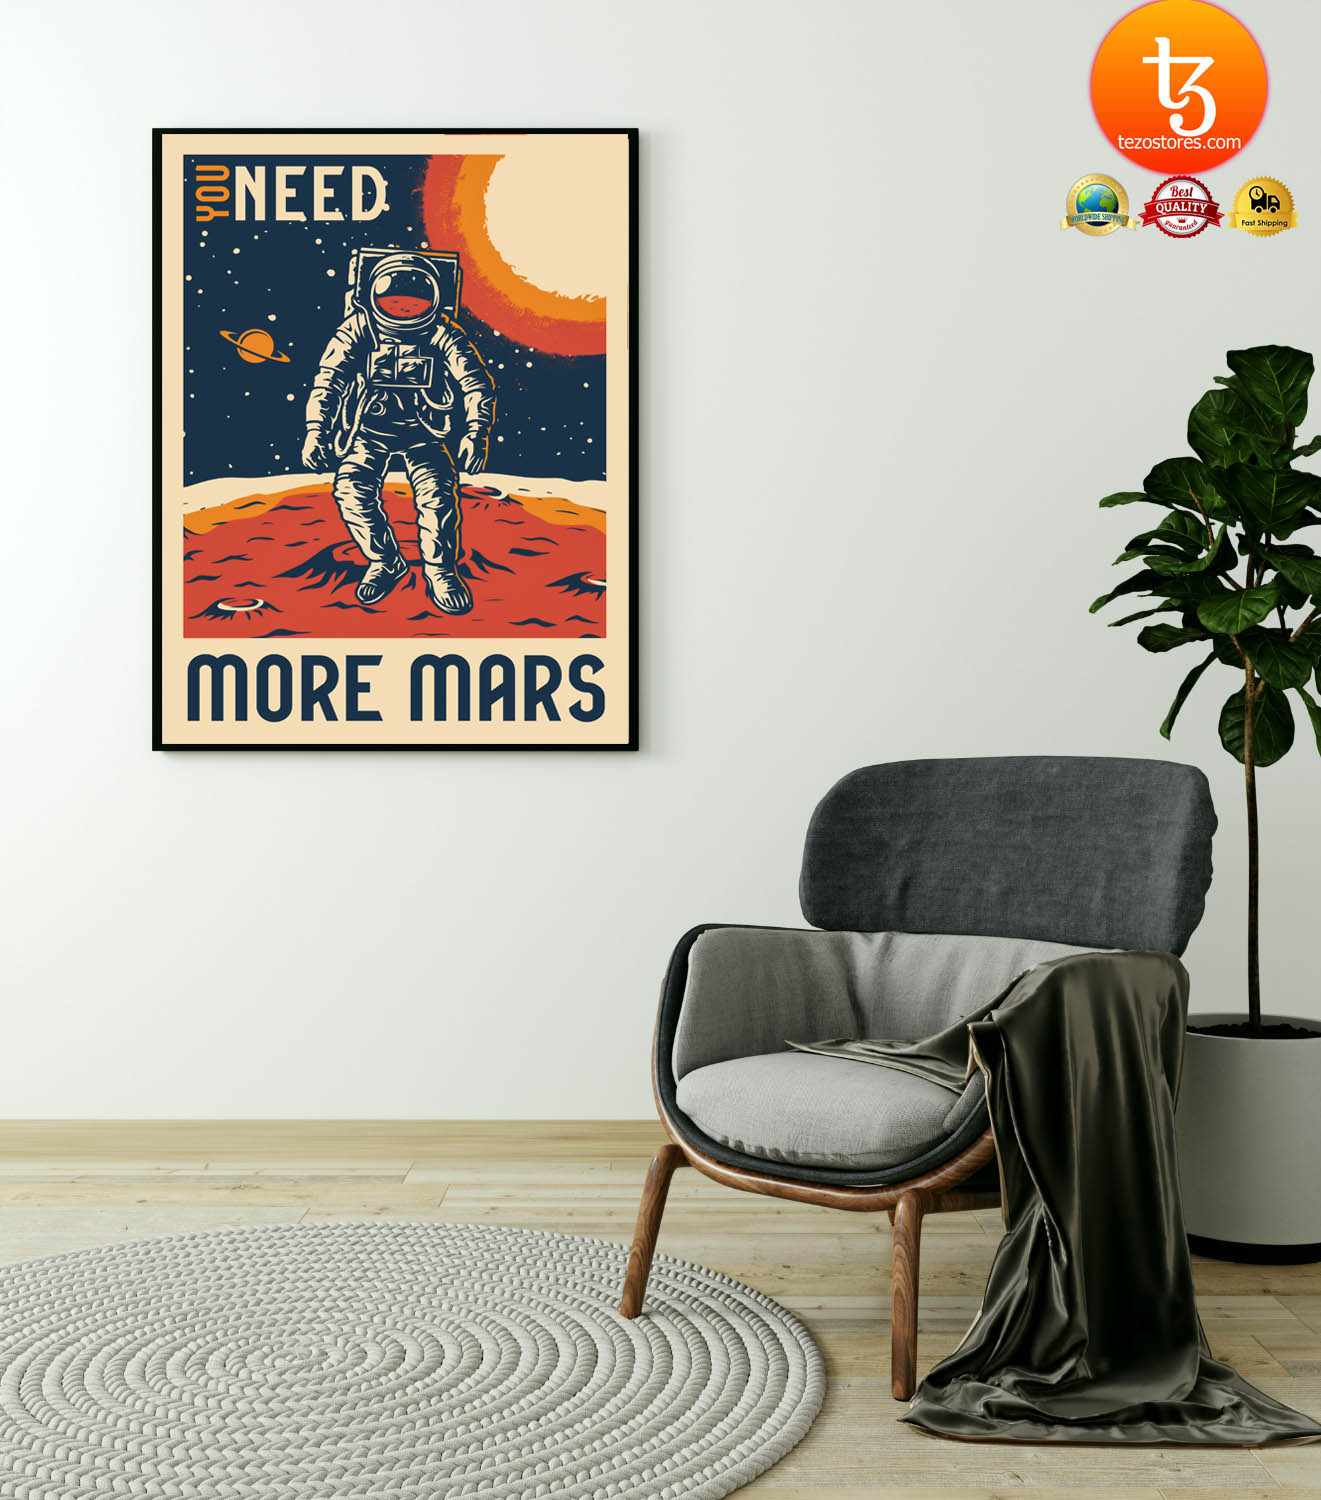 Astronaut You need more mars poster 3